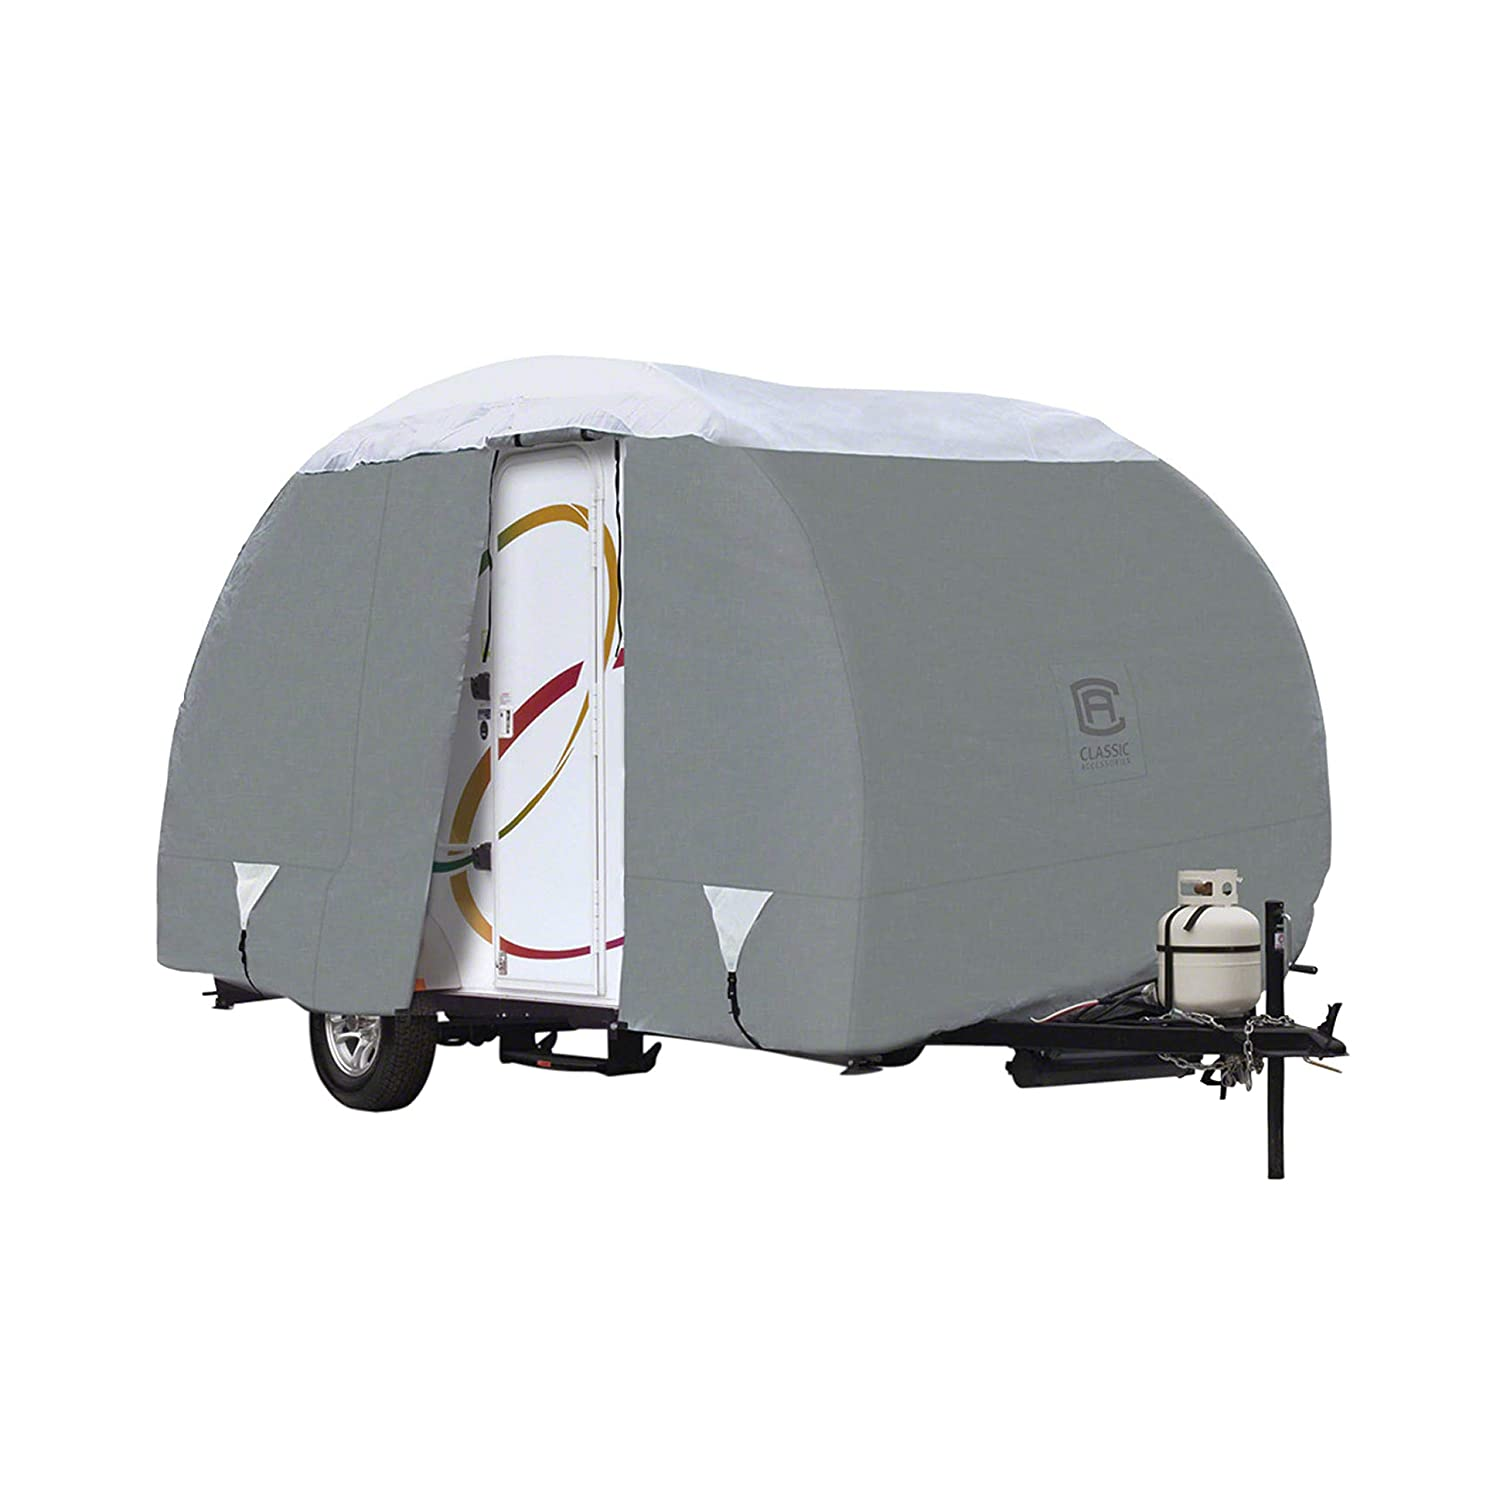 Fits Up To 18 8 Trailers Classic Accessories 80-199-151001-00 Overdrive PolyPro III Deluxe Teardrop R-Pod Travel Trailer Cover